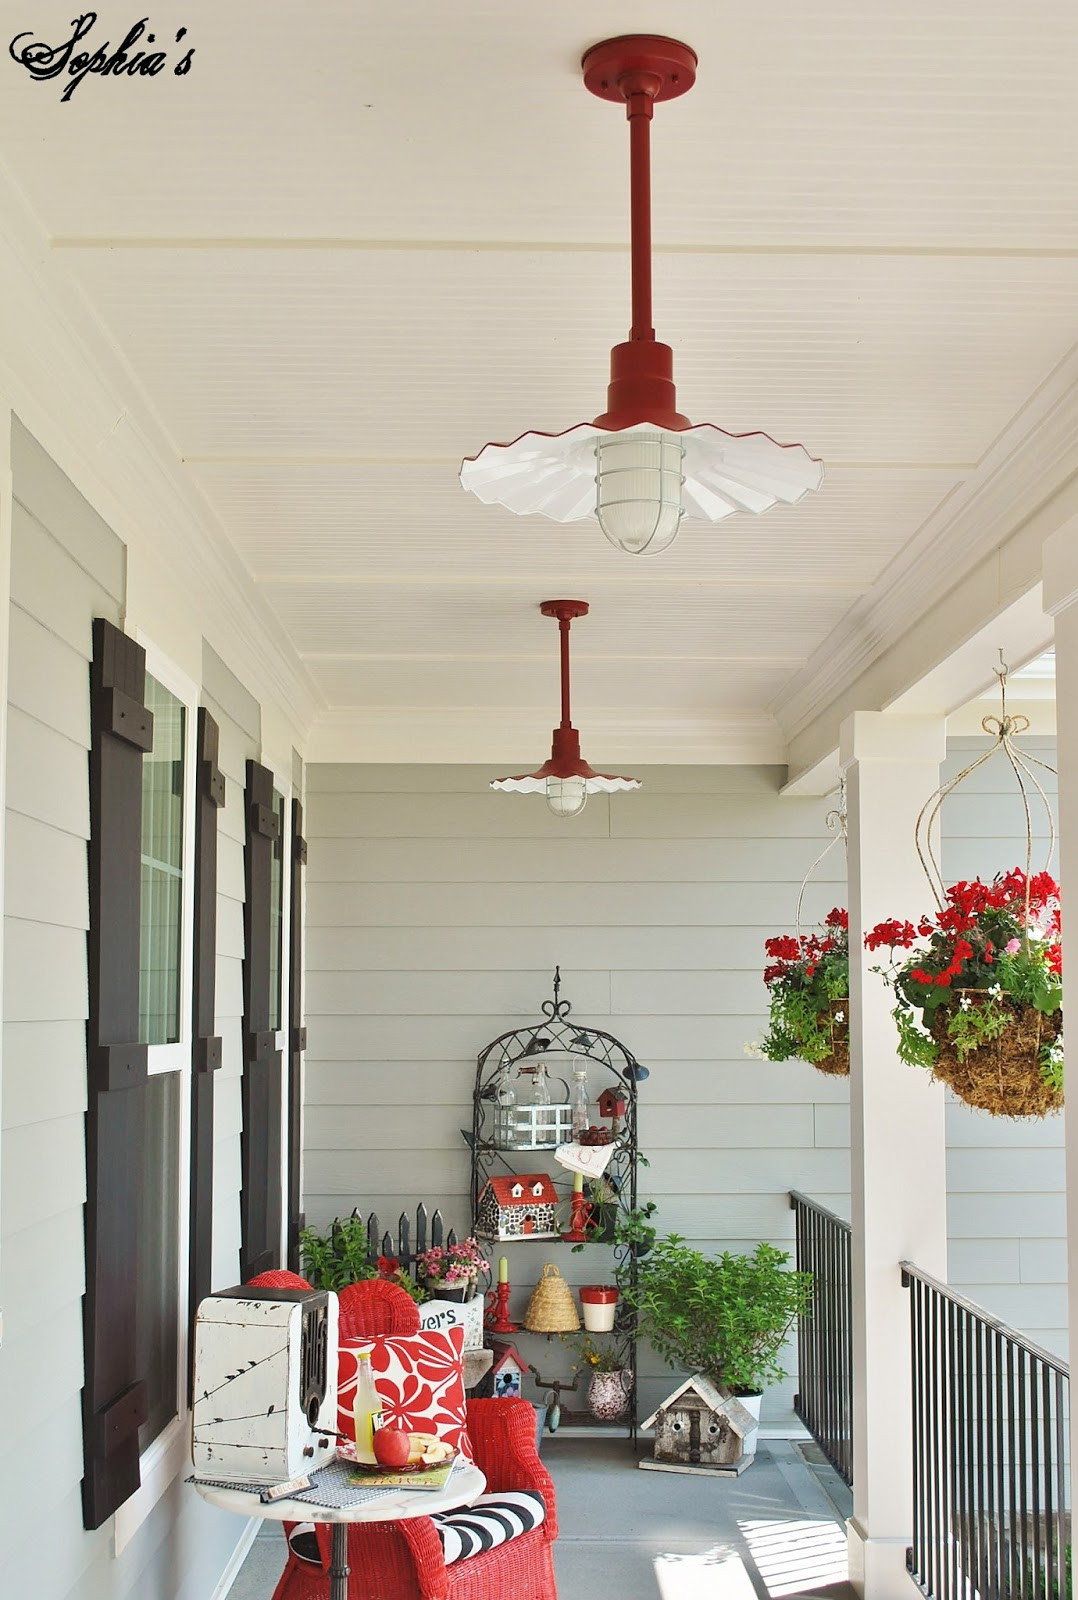 Best ideas about Red Porch Lights . Save or Pin Sophia s Farmhouse Style Front Porch with Pops of Red Now.